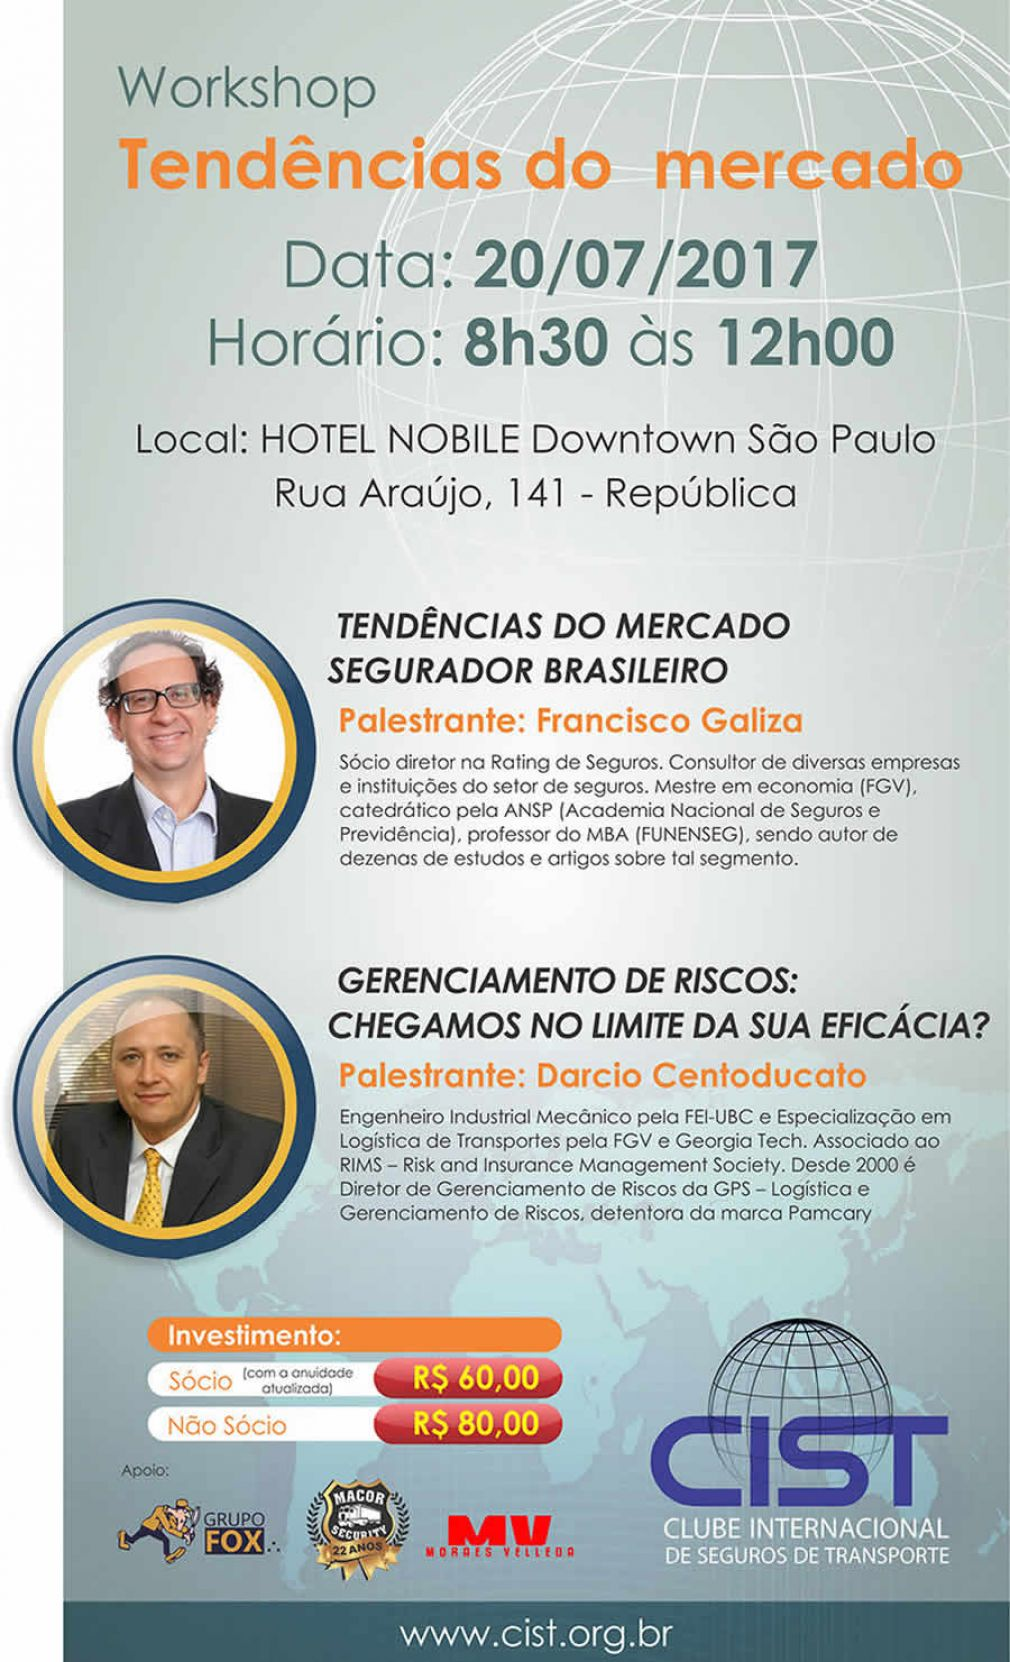 "CIST - Encontro de Negocios | Workshop : ""Tendencias do Mercado"" 